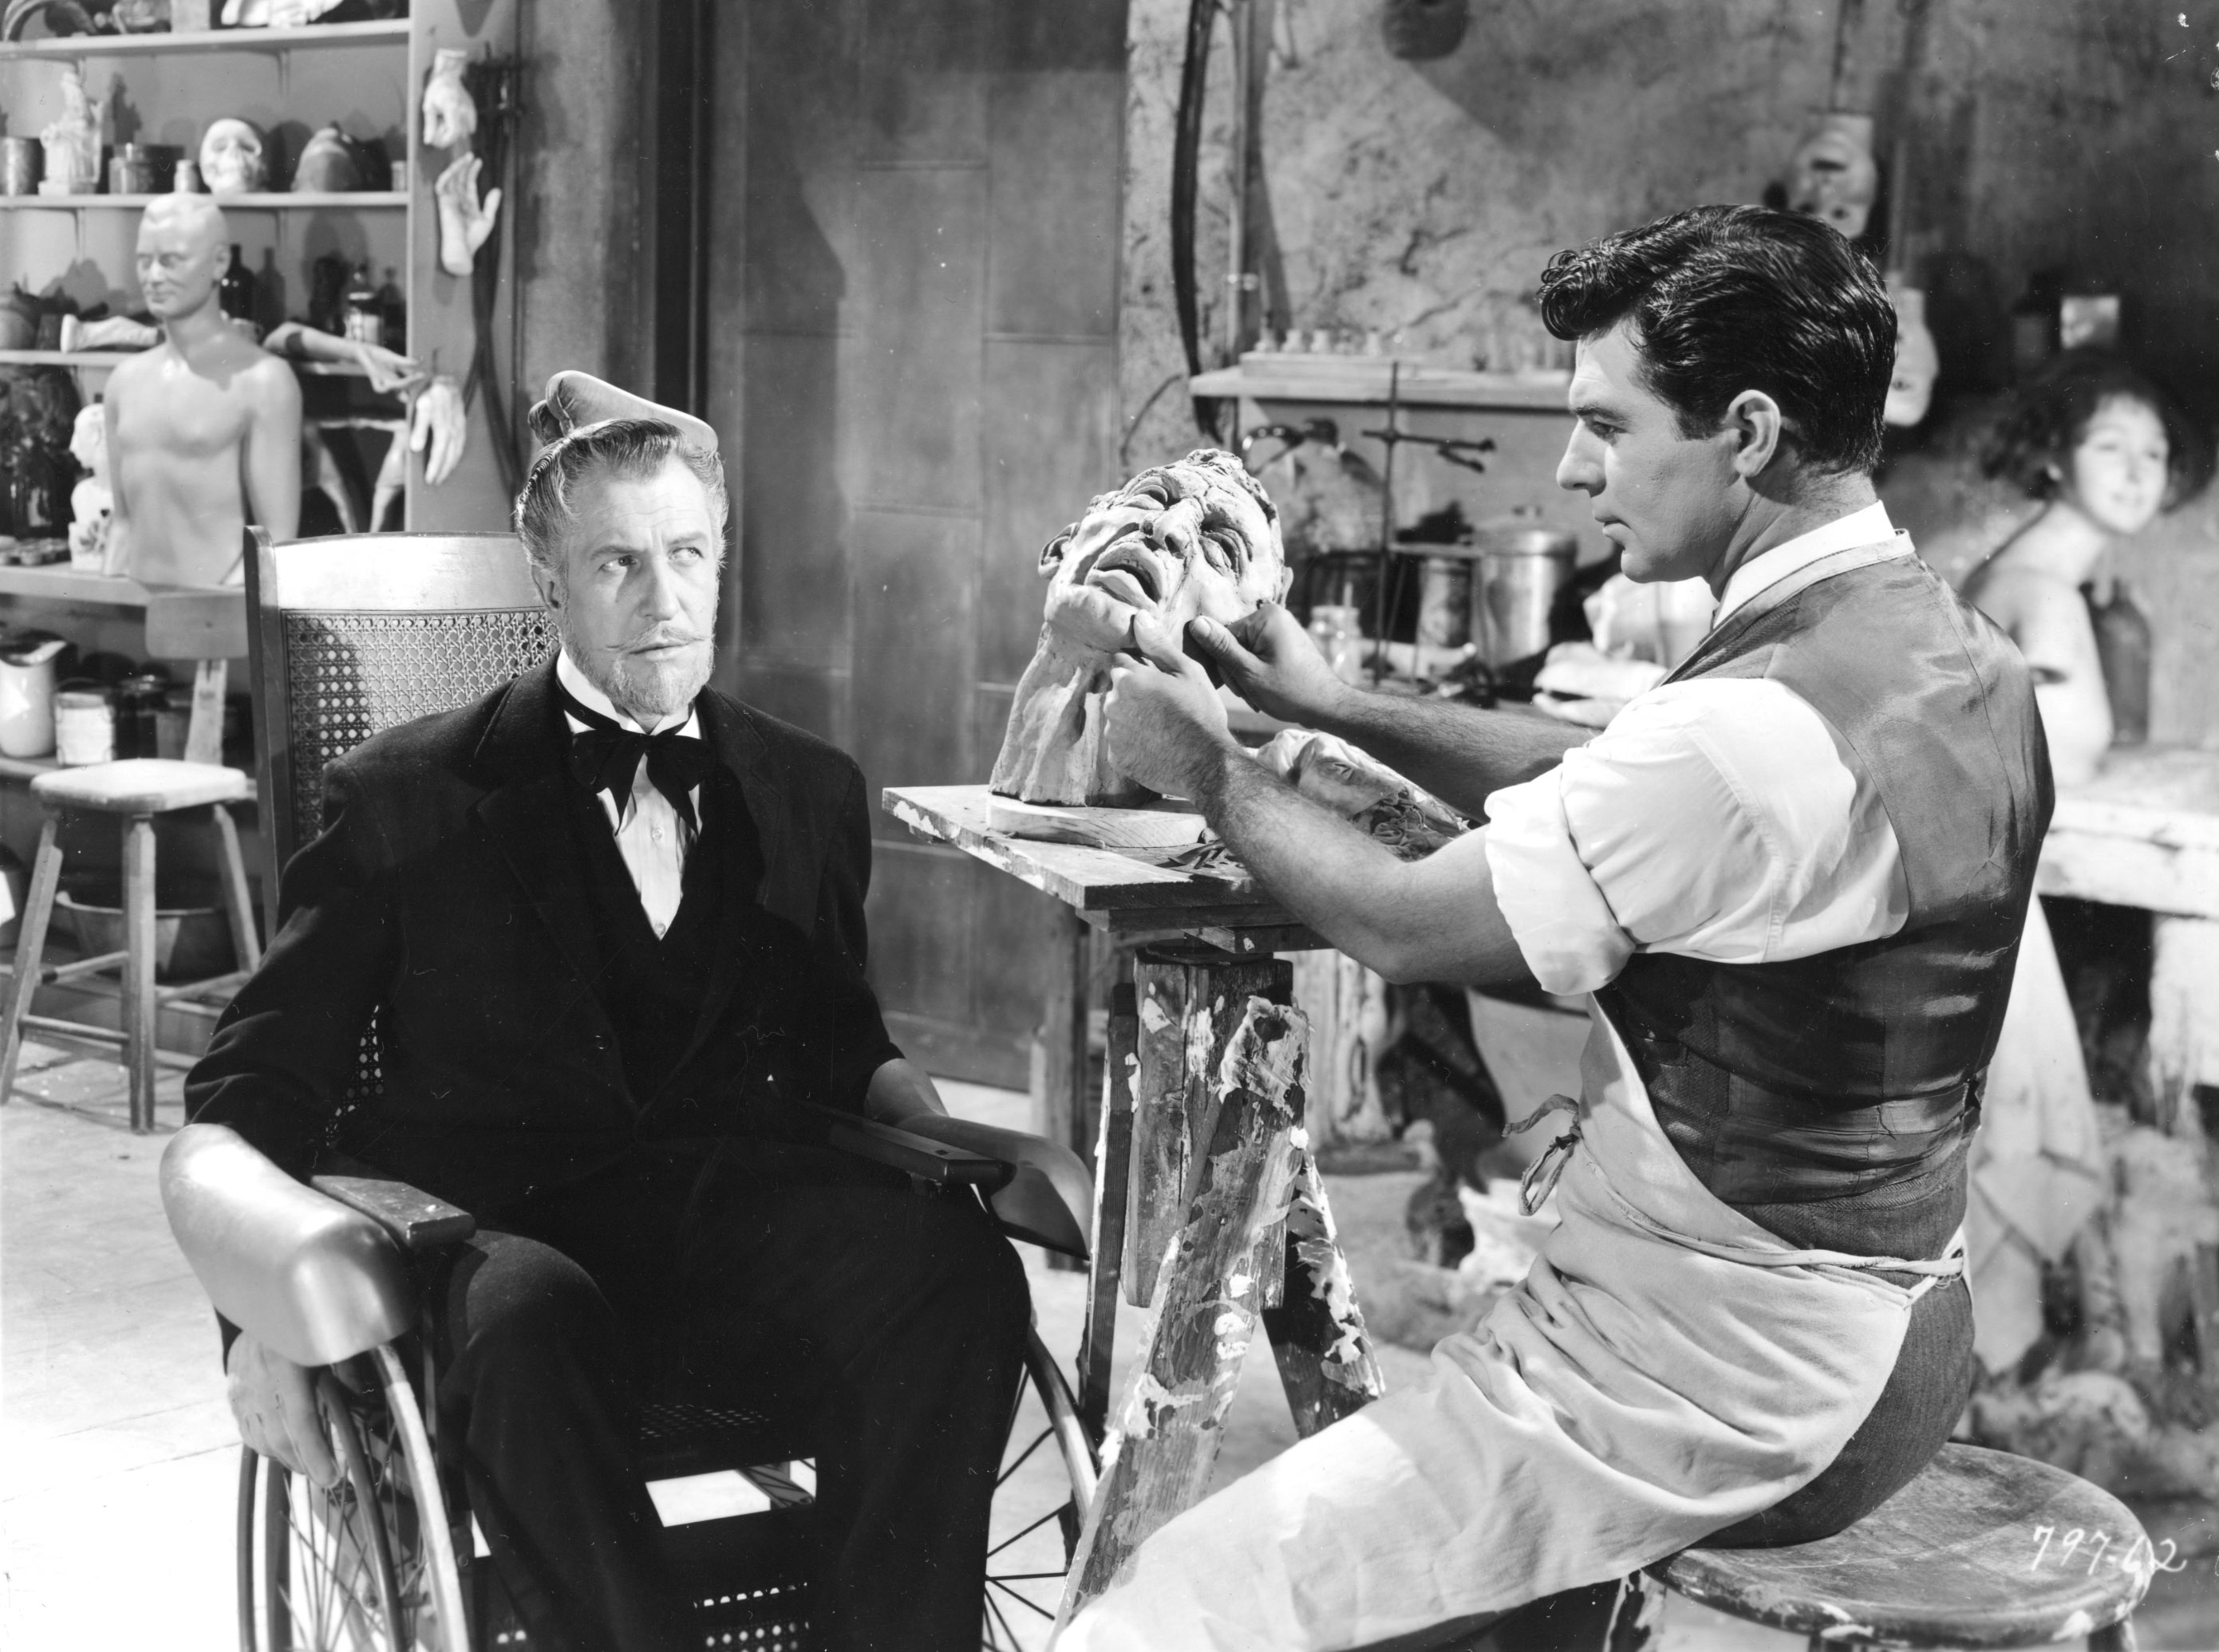 Vincent Price (seated) as Henry Jarrod, the role the launched him into horror stardom.